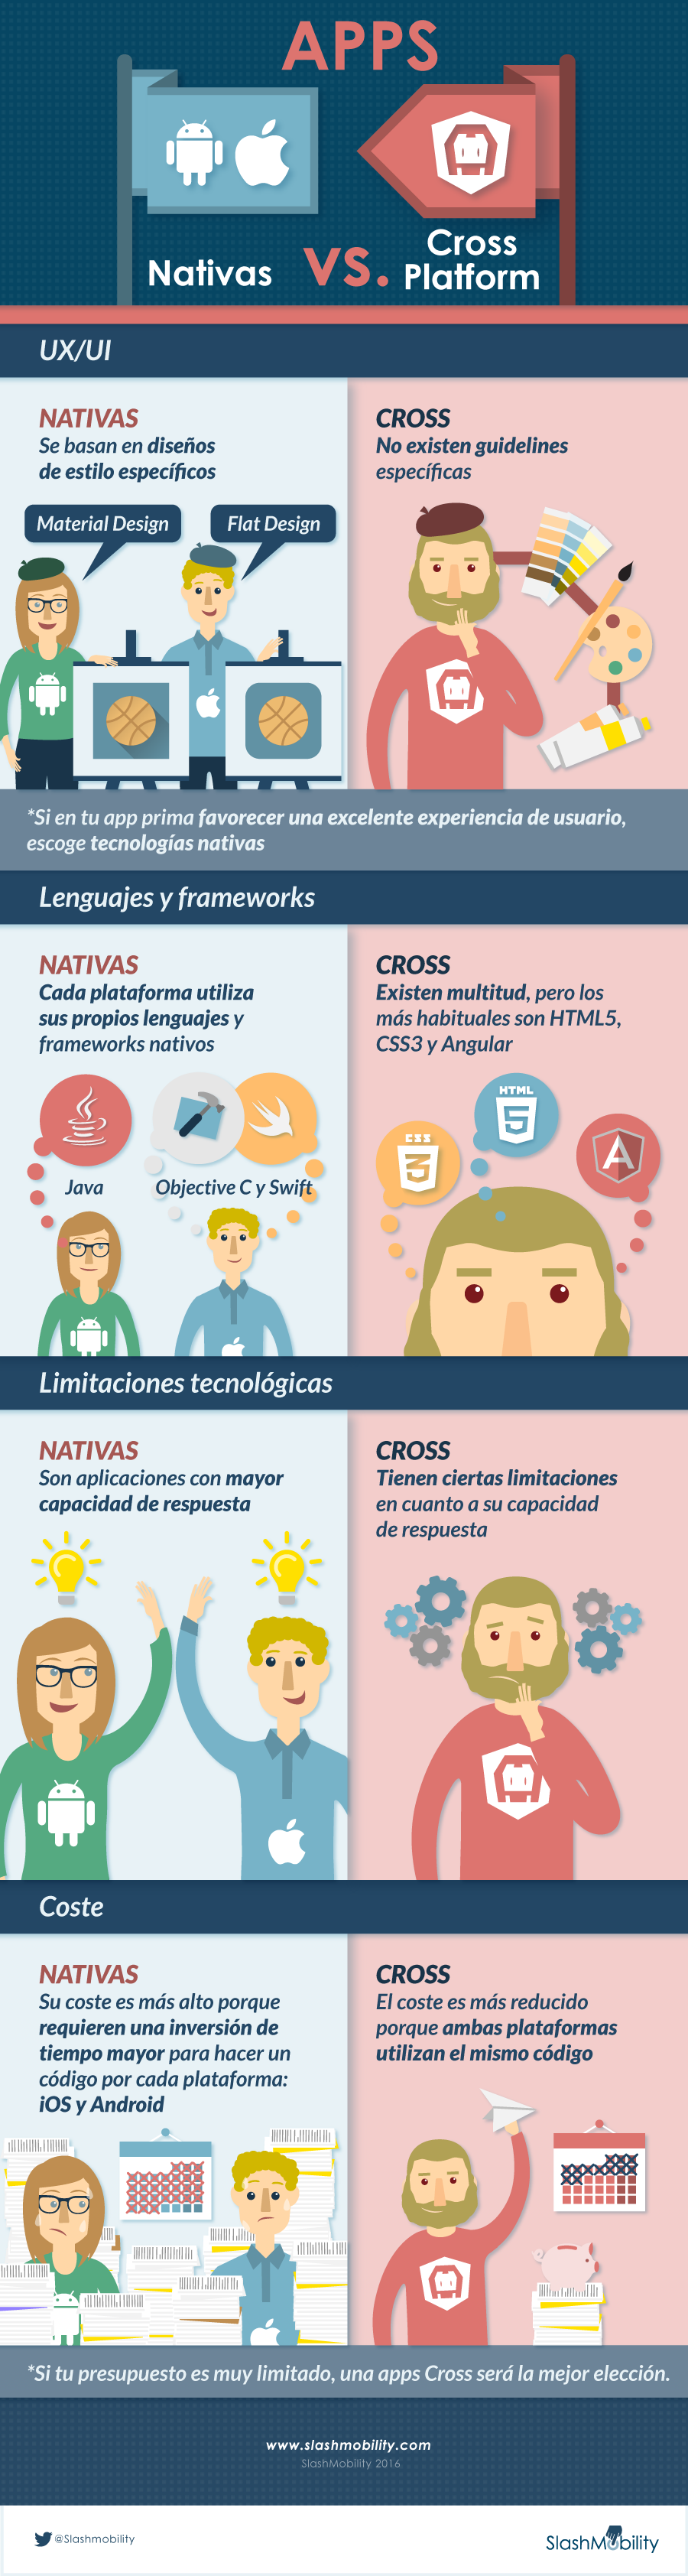 apps nativa vs cross infografia